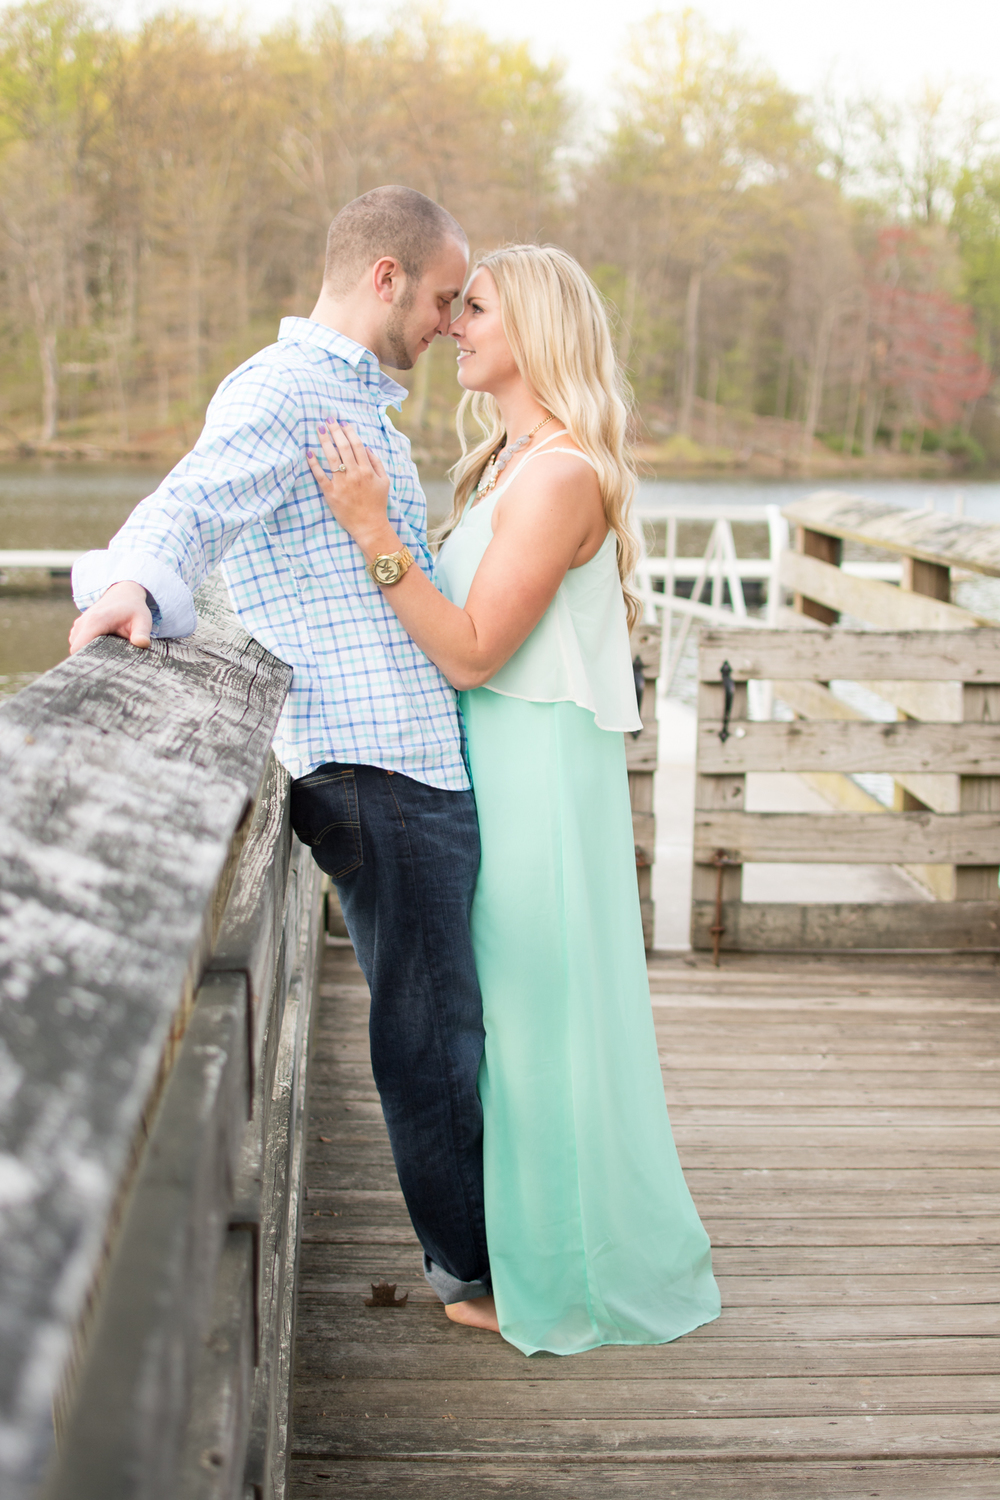 cunningham falls engagement session photo couple on pier